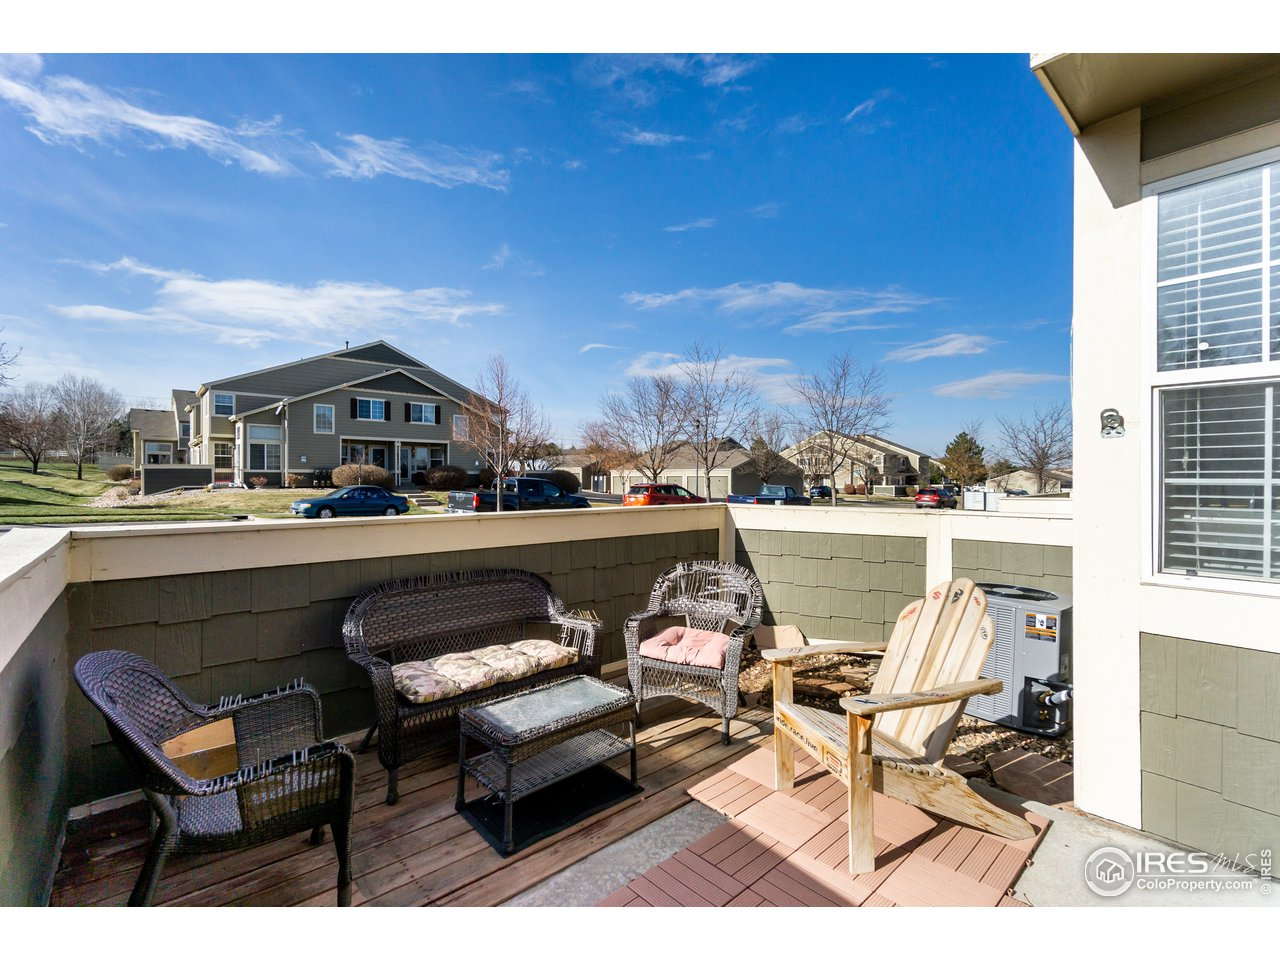 Patio to relax on in this quiet community